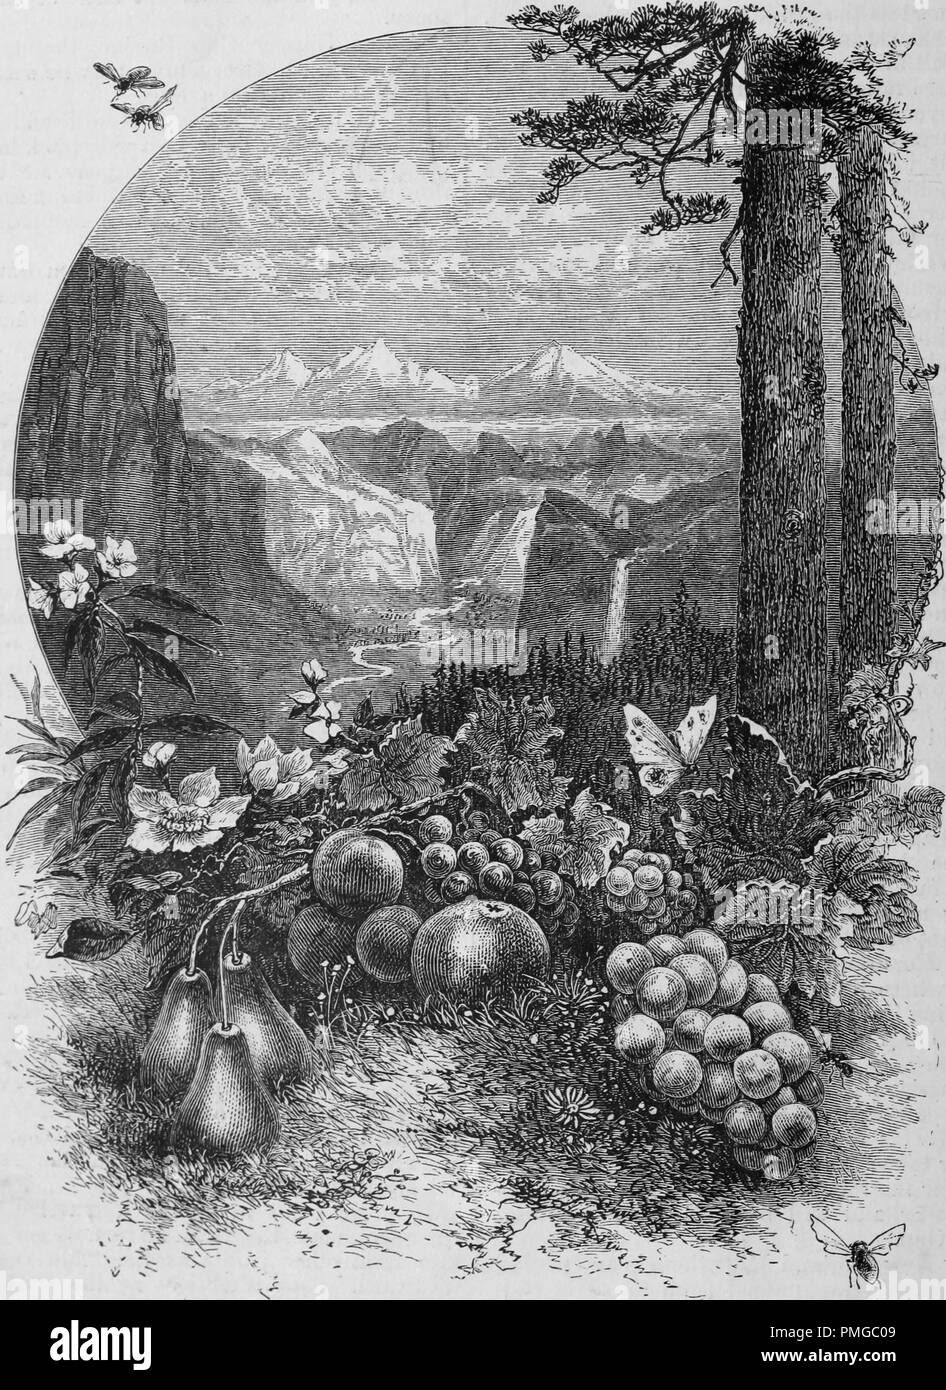 Engraving of 'A Vision of the Golden Country' by Thomas Moran, from the book 'The Pacific tourist', 1877. Courtesy Internet Archive. () - Stock Image